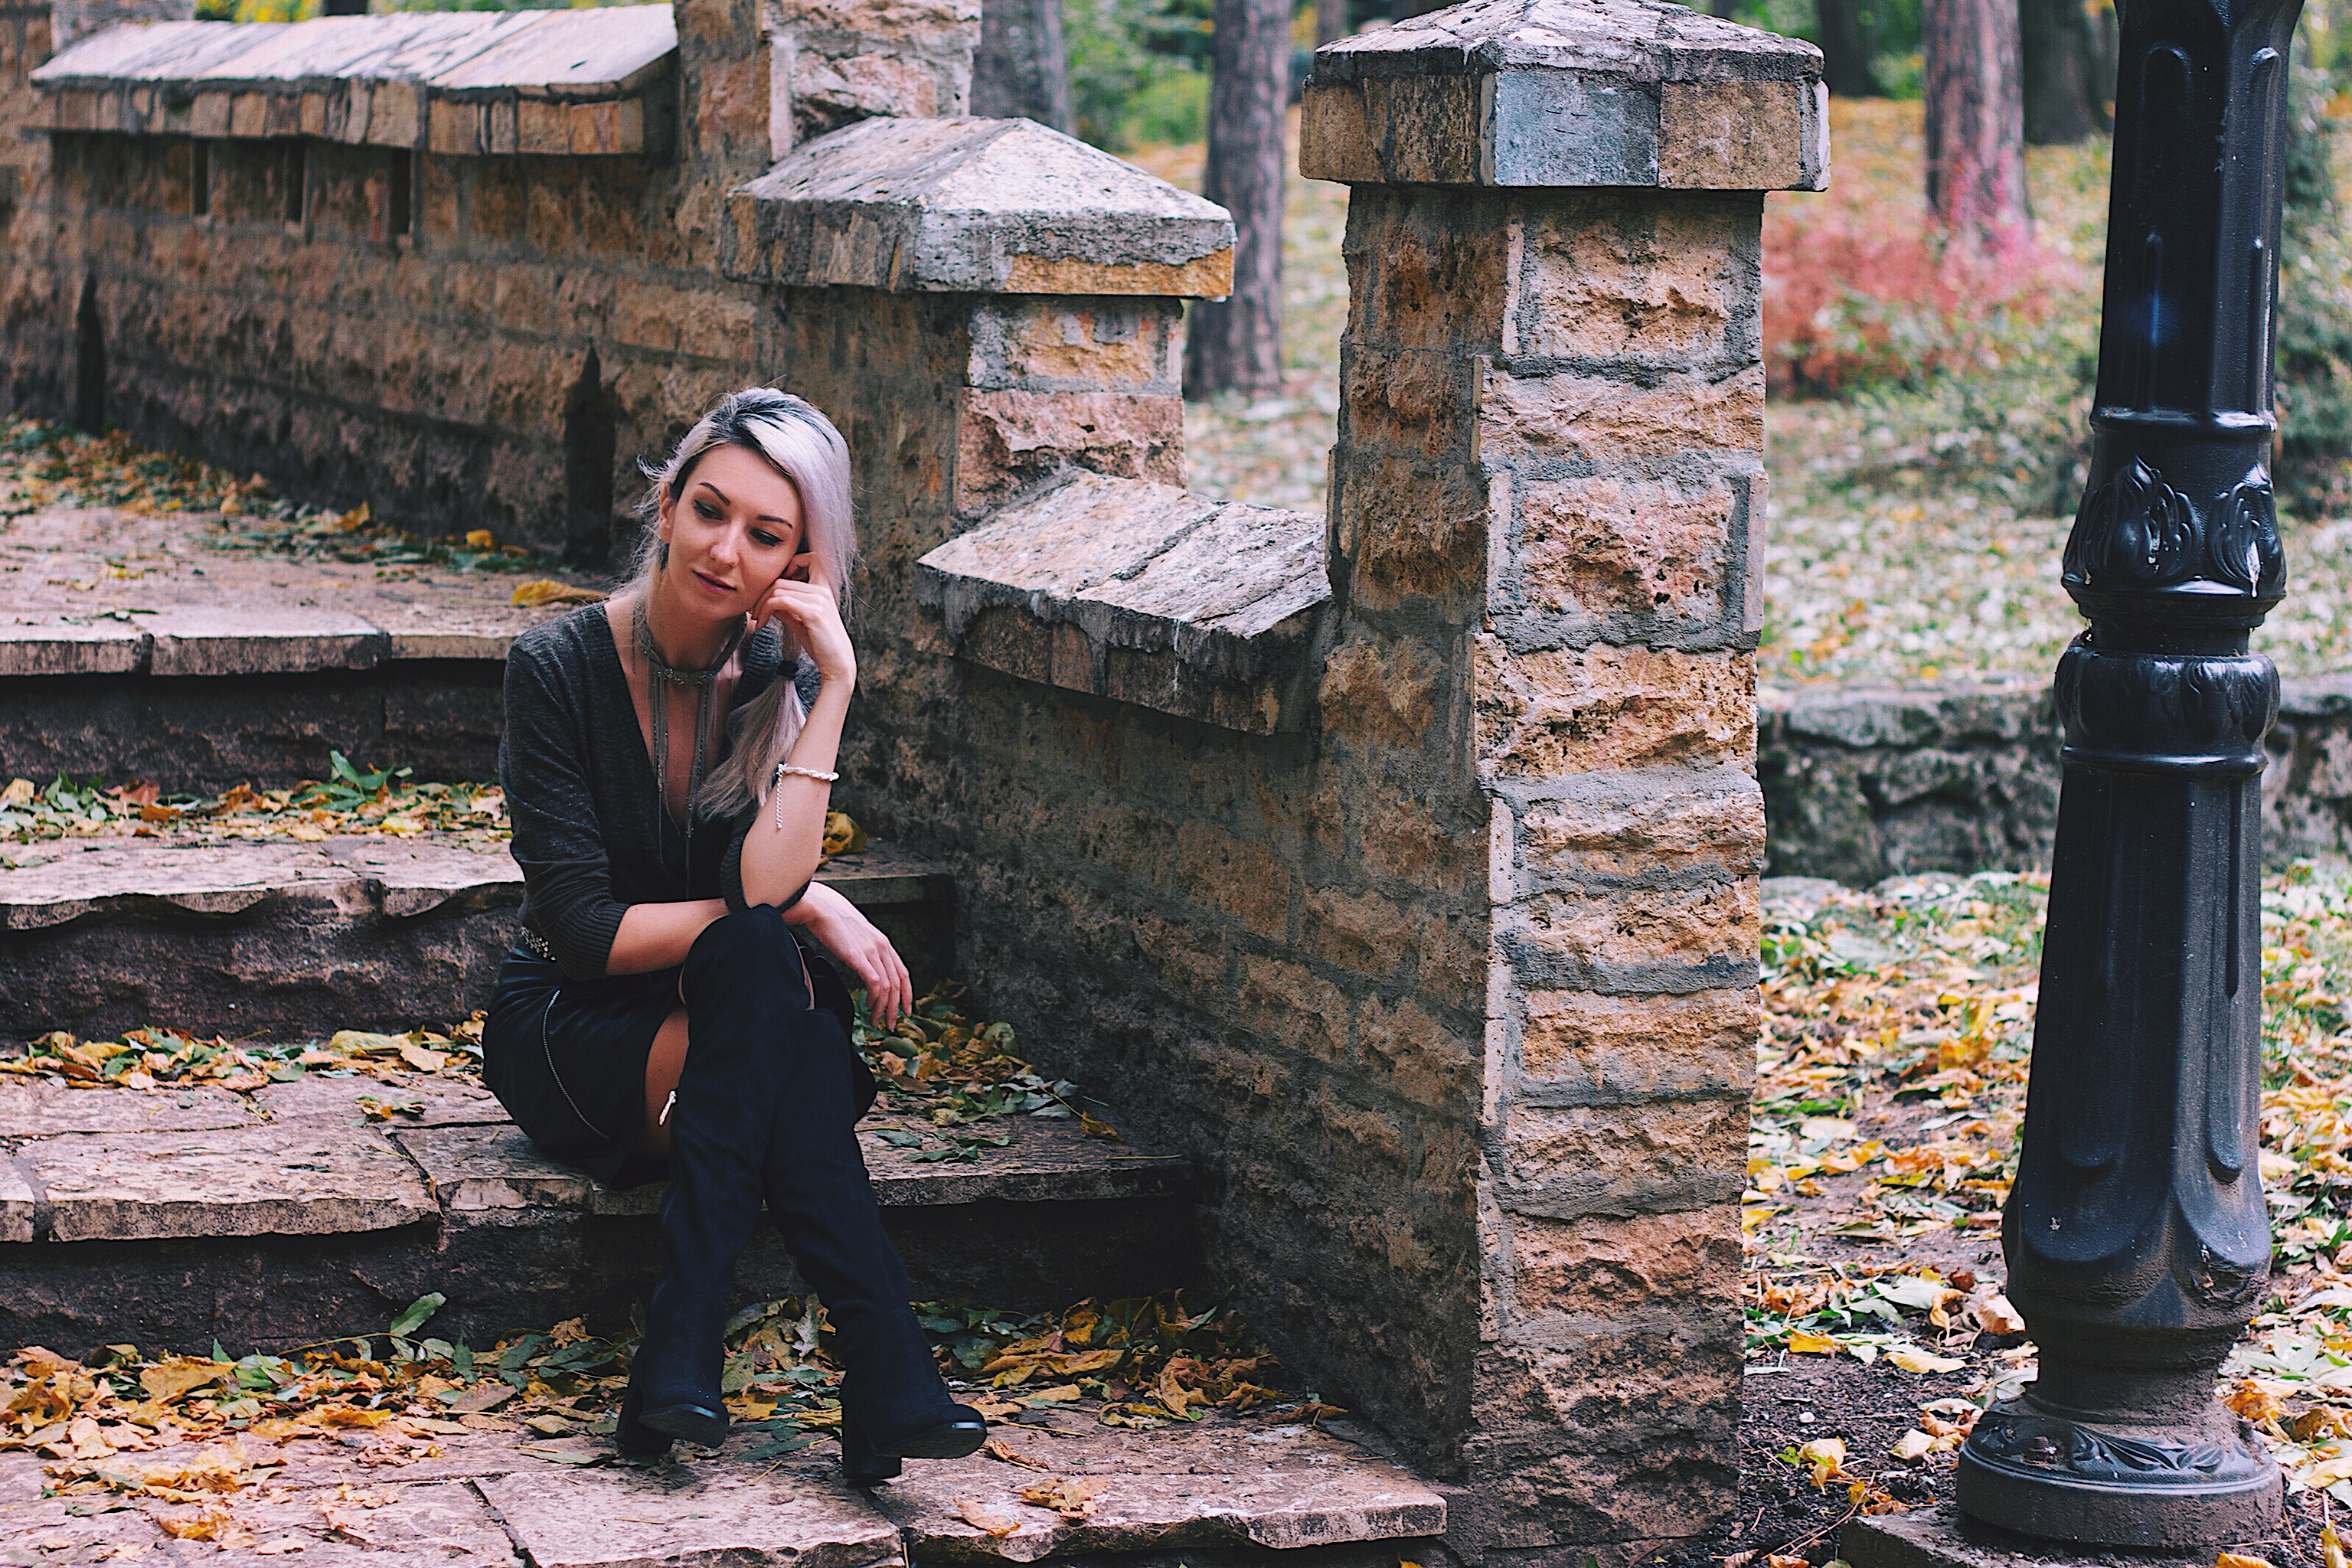 Autumn Moods Leather Skirt Over the Knee Boots Copou Park Iasi